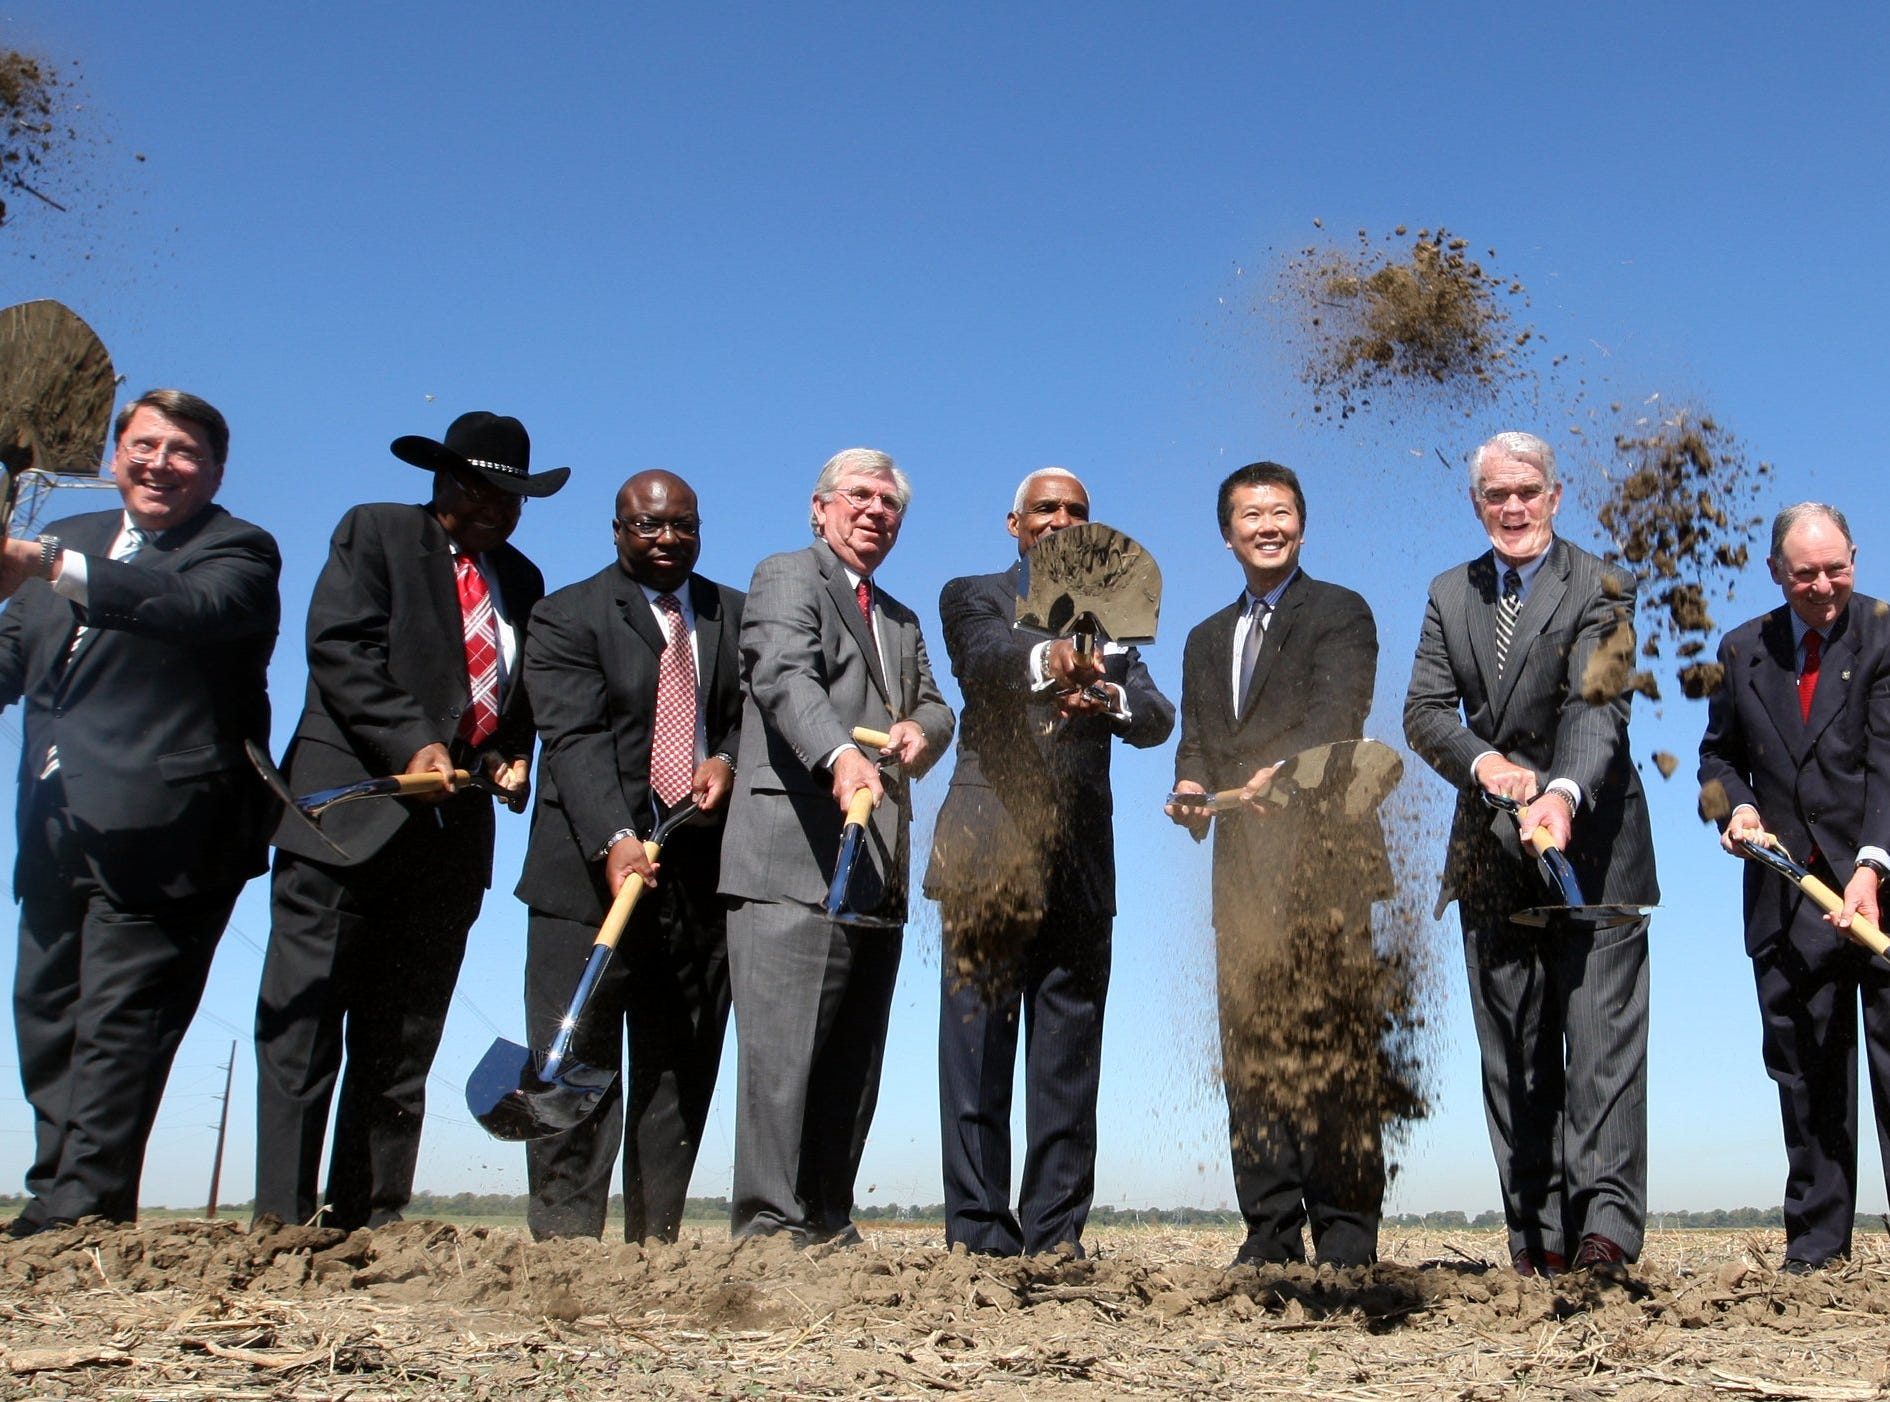 October 5, 2011 - Ground is broken on the new Electrolux facility in the Frank Pidgeon Industrial Park. Taking part in the official ground breaking ceremony are (From Left) State Senator Mark Norris, Shelcy County Commission Chairman Sidney Chism, EDGE Chairman Al Bright, Deputy Governor Claude Rasey, Mayor A C Wharton, Electrolux North America president and CEO Jack Truong, Mayor Mark Luttrell, Arnold Perl,  Chris Berryman of TVA, Delta Region Authority Chairman Chris Masingill and Memphis City Council Chairman Myron Lowery.  (Dave Darnell / The Commercial Appeal)